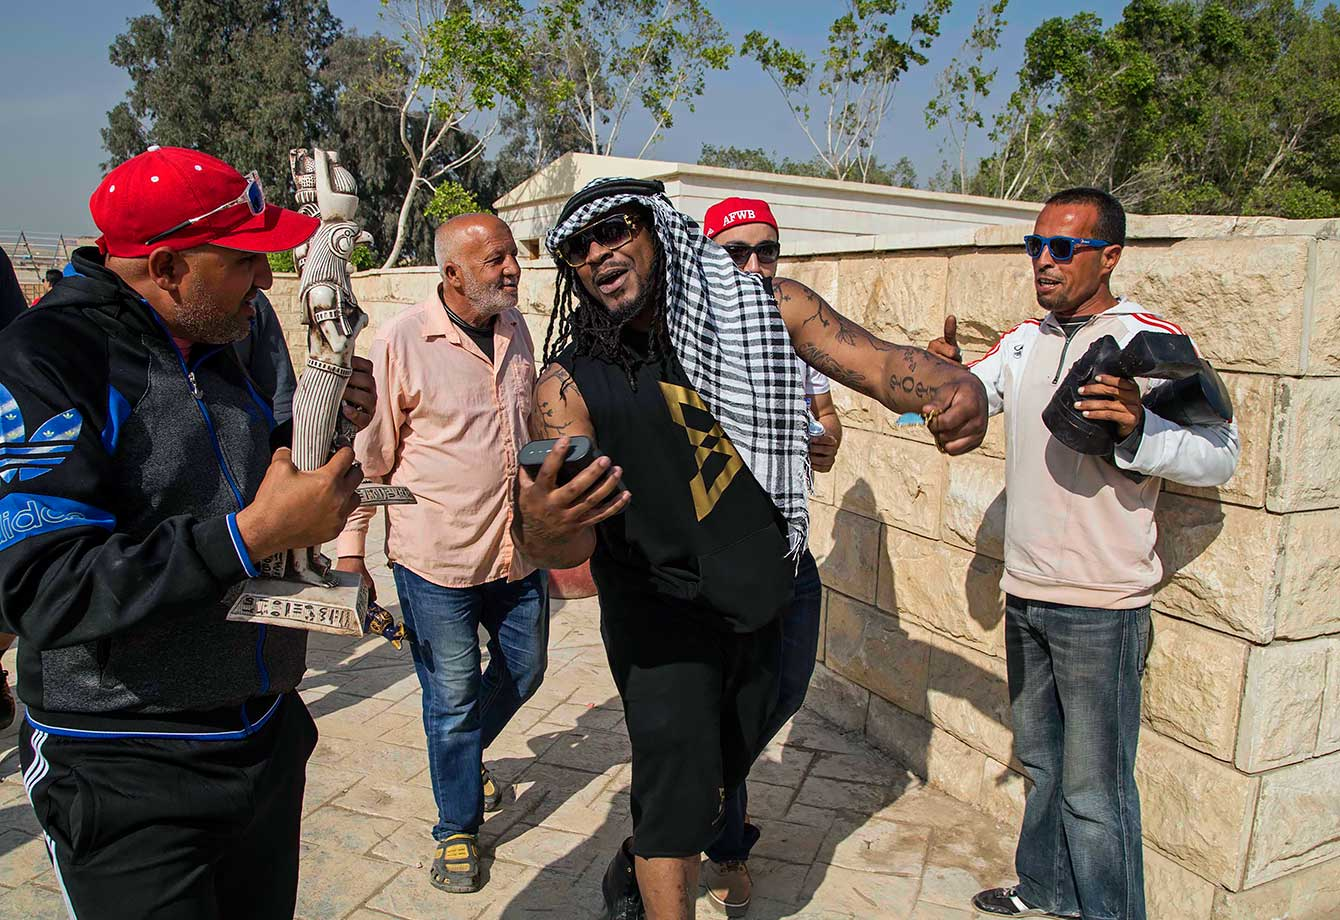 Marshawn Lynch with American Football Without Barriers, a non-profit organization that educates disadvantaged children in the United States and overseas, visits the Pyramids of Giza in Cairo, Egypt.